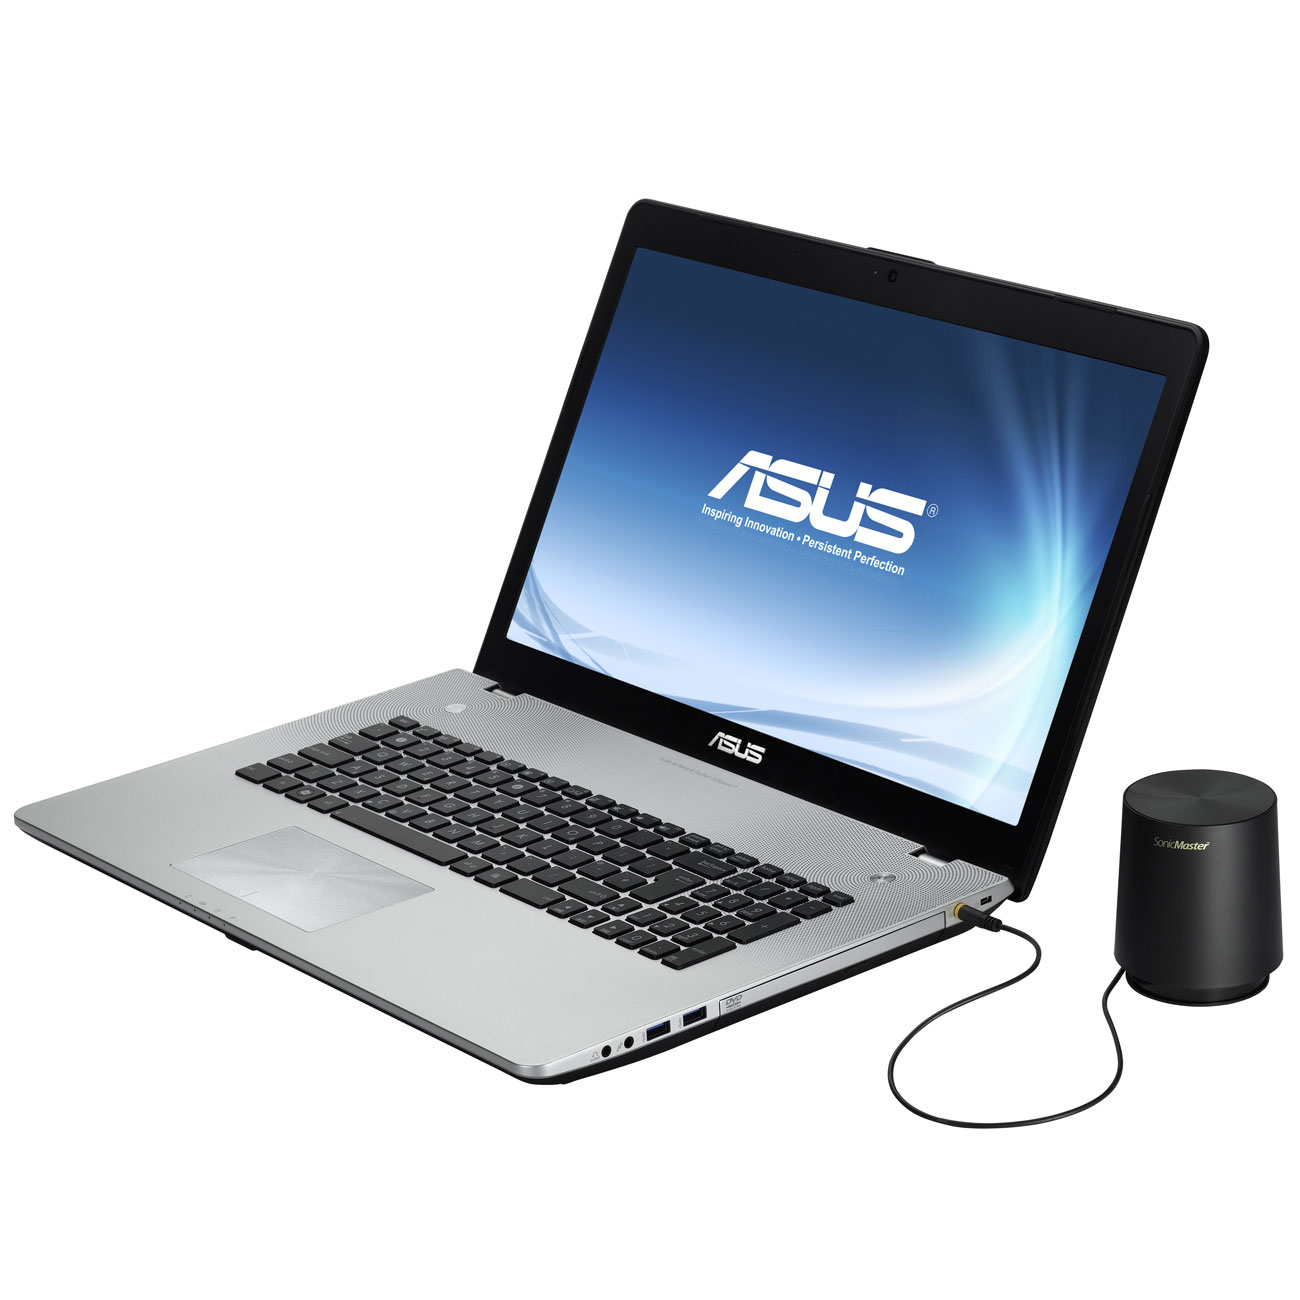 asus n76vz v4g t1153h pc portable asus sur. Black Bedroom Furniture Sets. Home Design Ideas